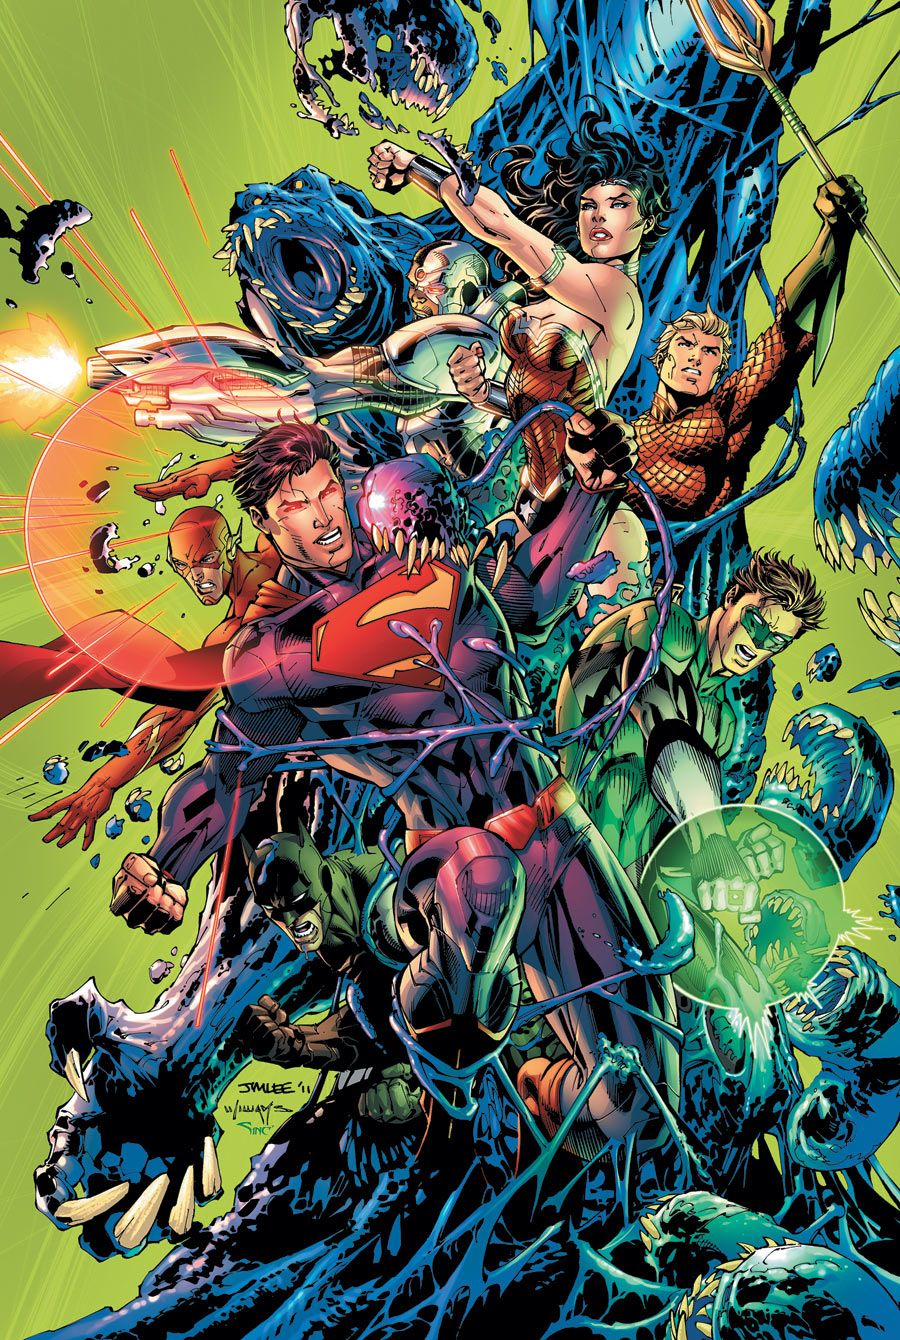 Modern Book Cover Artists : Justice league by jim lee comic books graphic novels